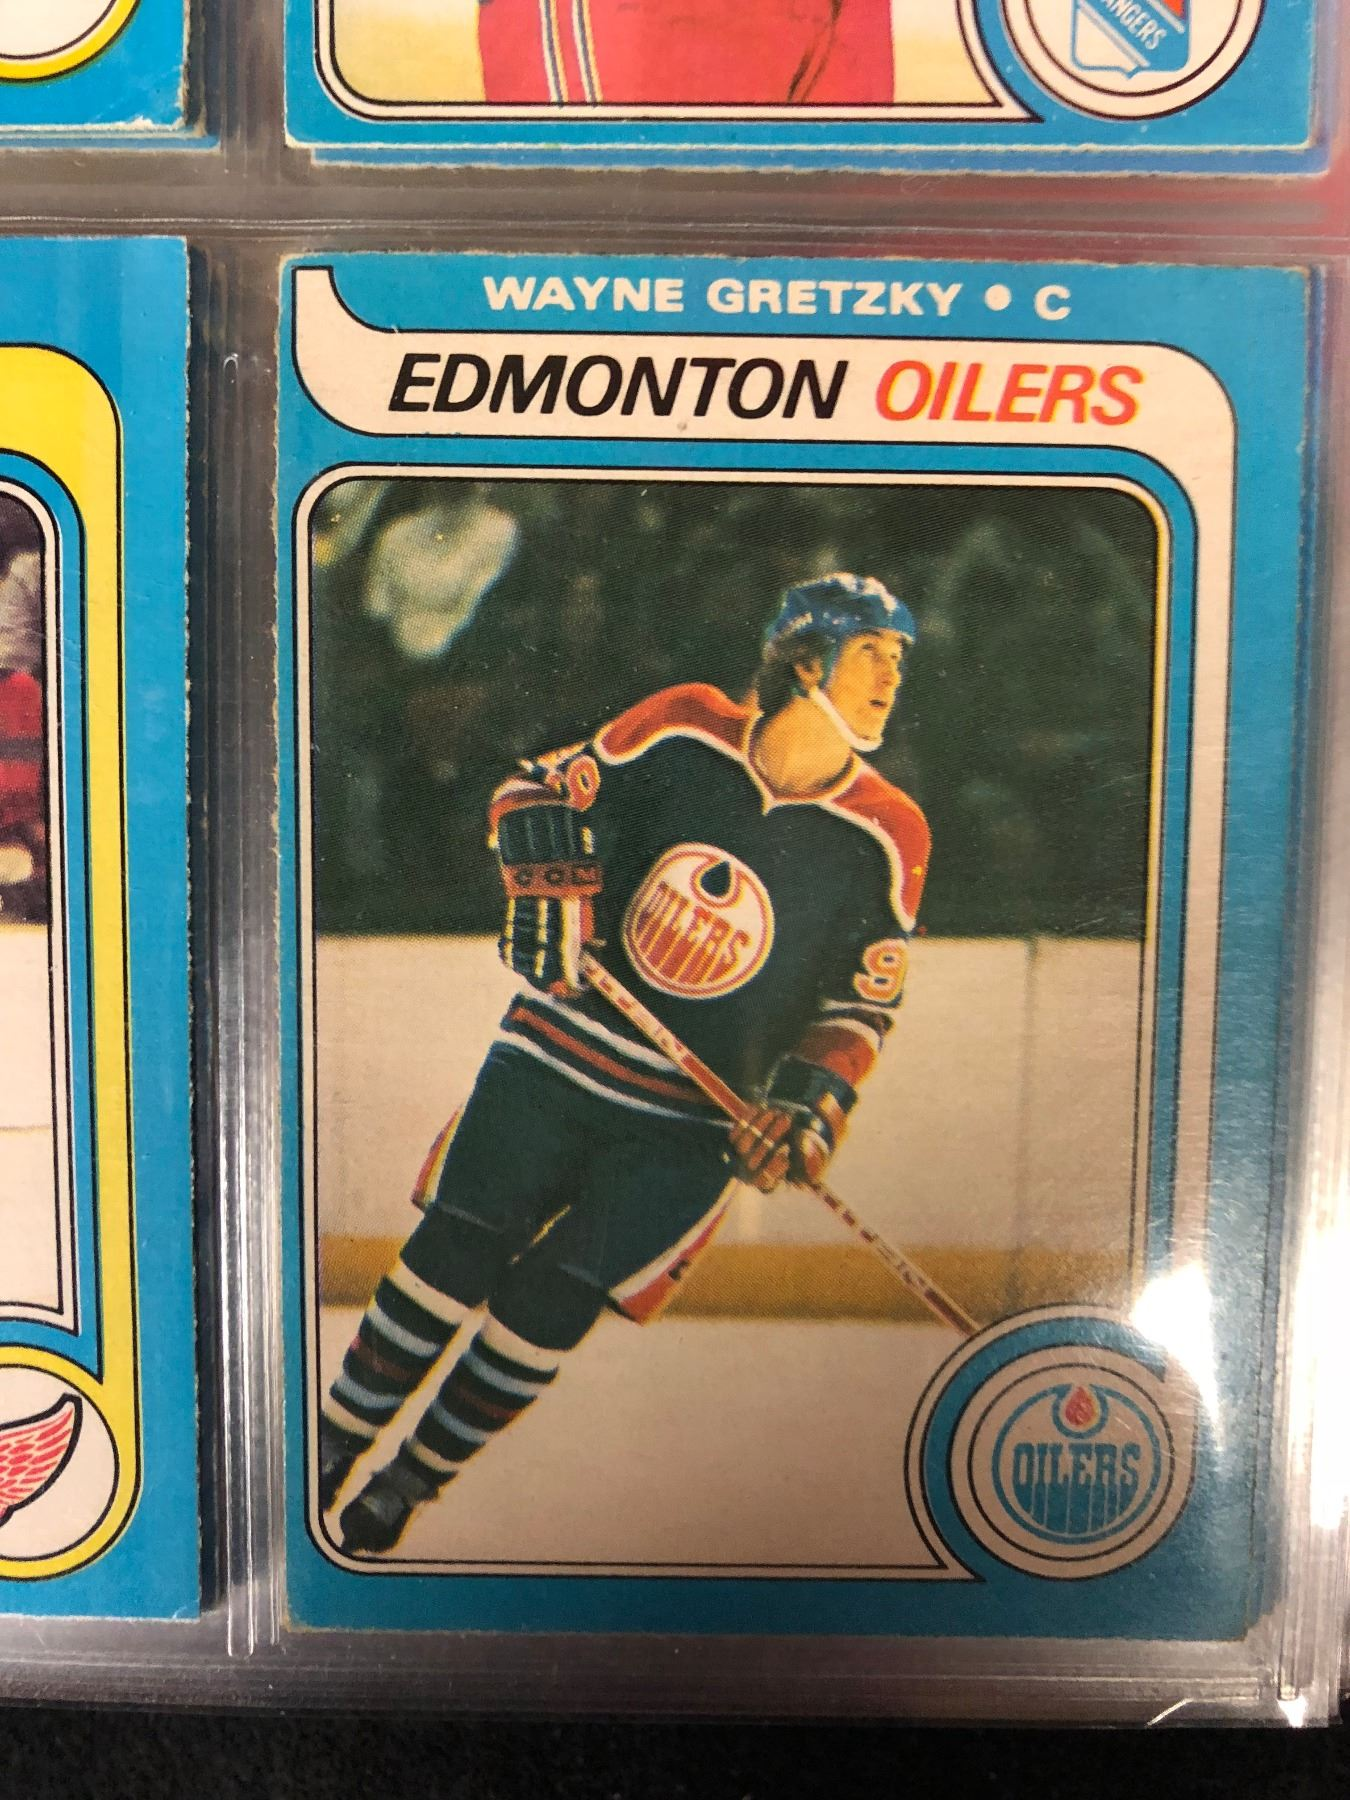 1979 80 O Pee Chee Hockey Cards Complete Set Includes Wayne Gretzky Rookie Card